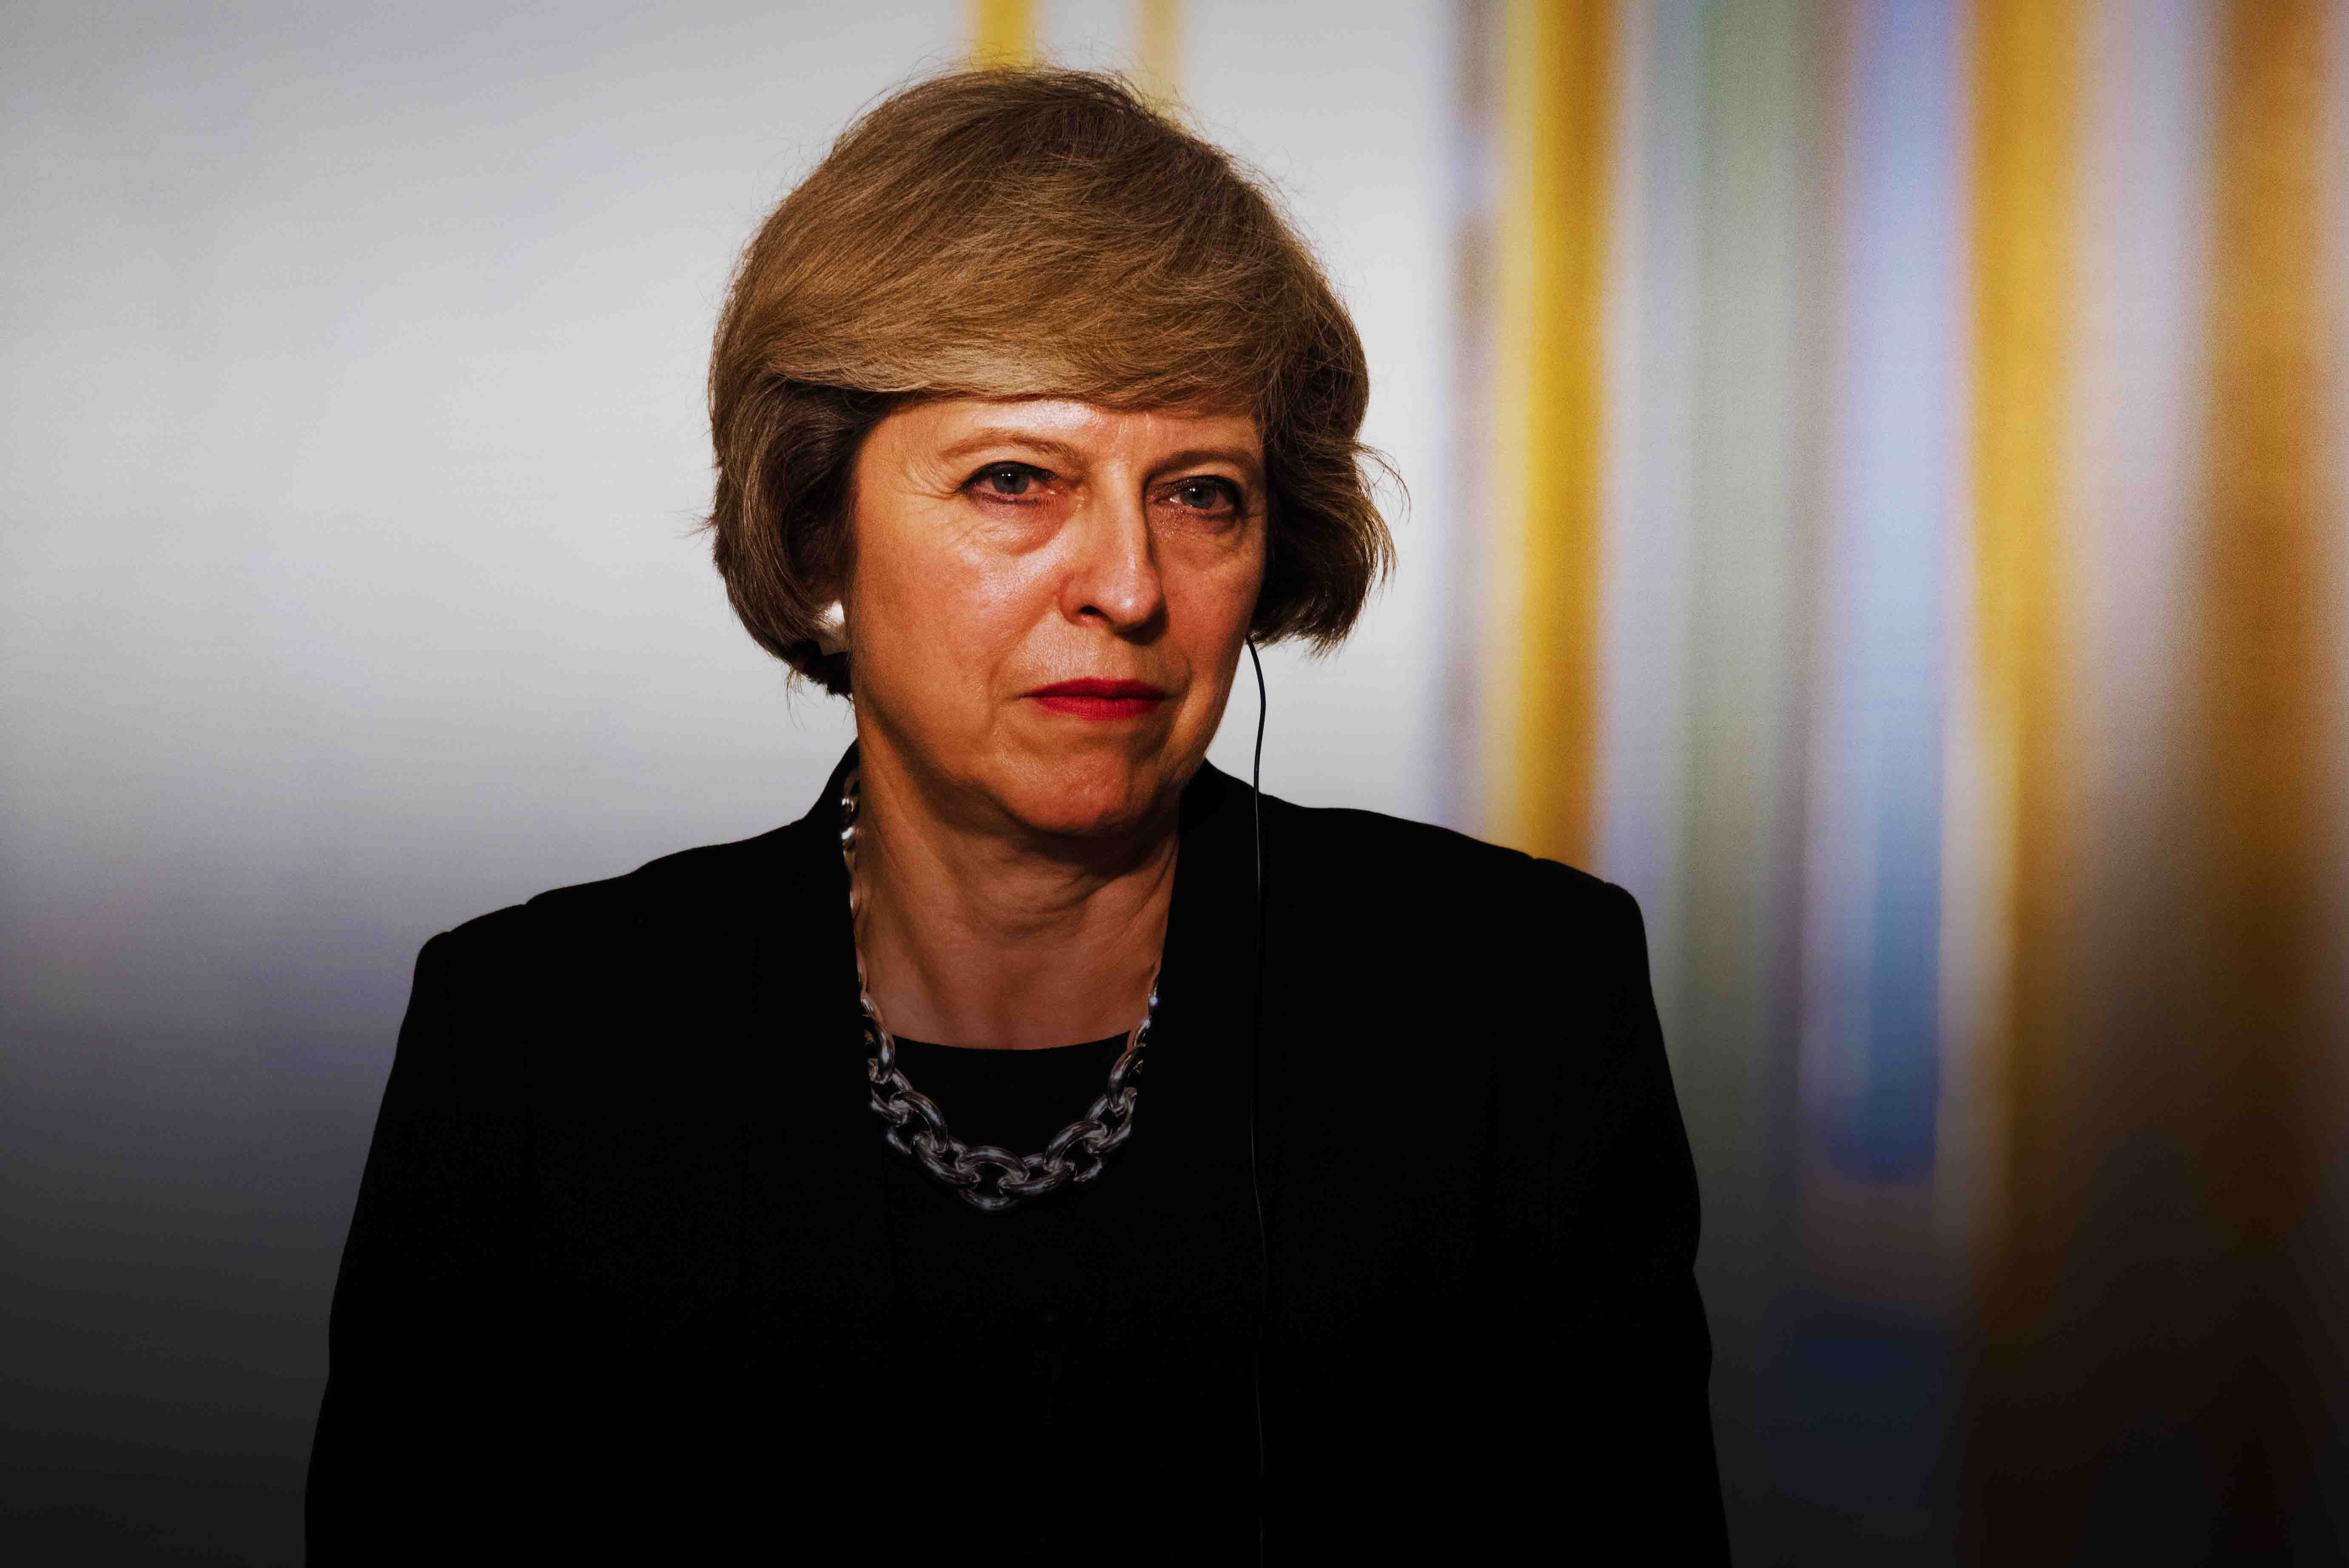 Does May have the reformist zeal?Does May have the reformist zeal?